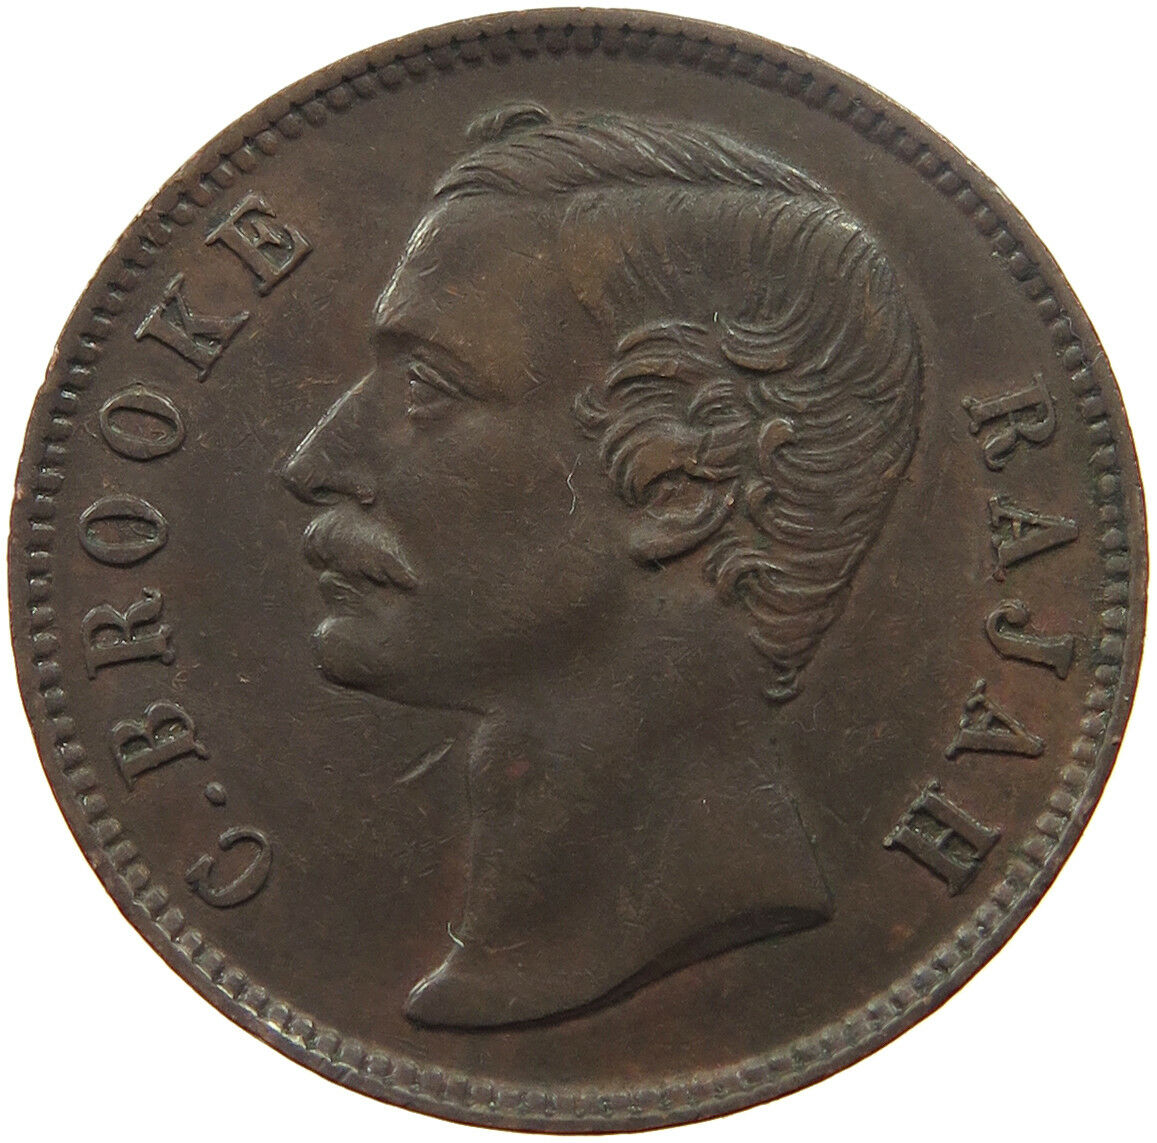 One Cent 1890: Photo Sarawak One Cent 1890